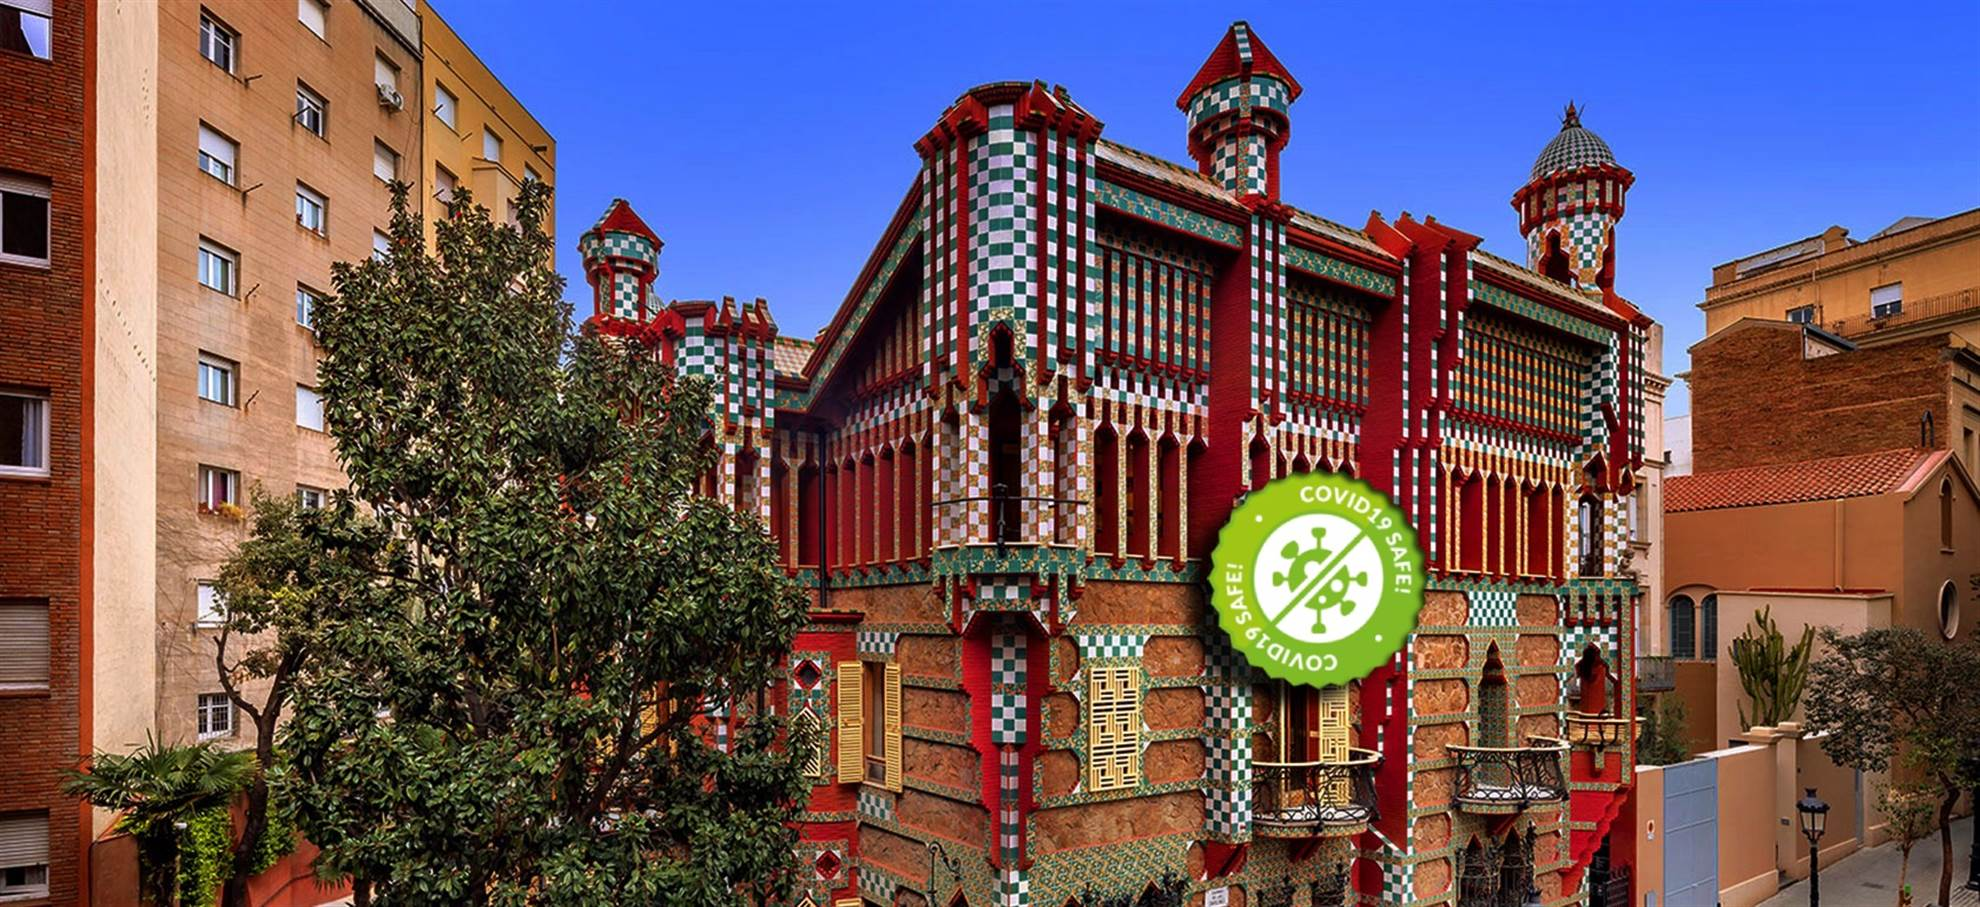 Casa Vicens - Skip the line!